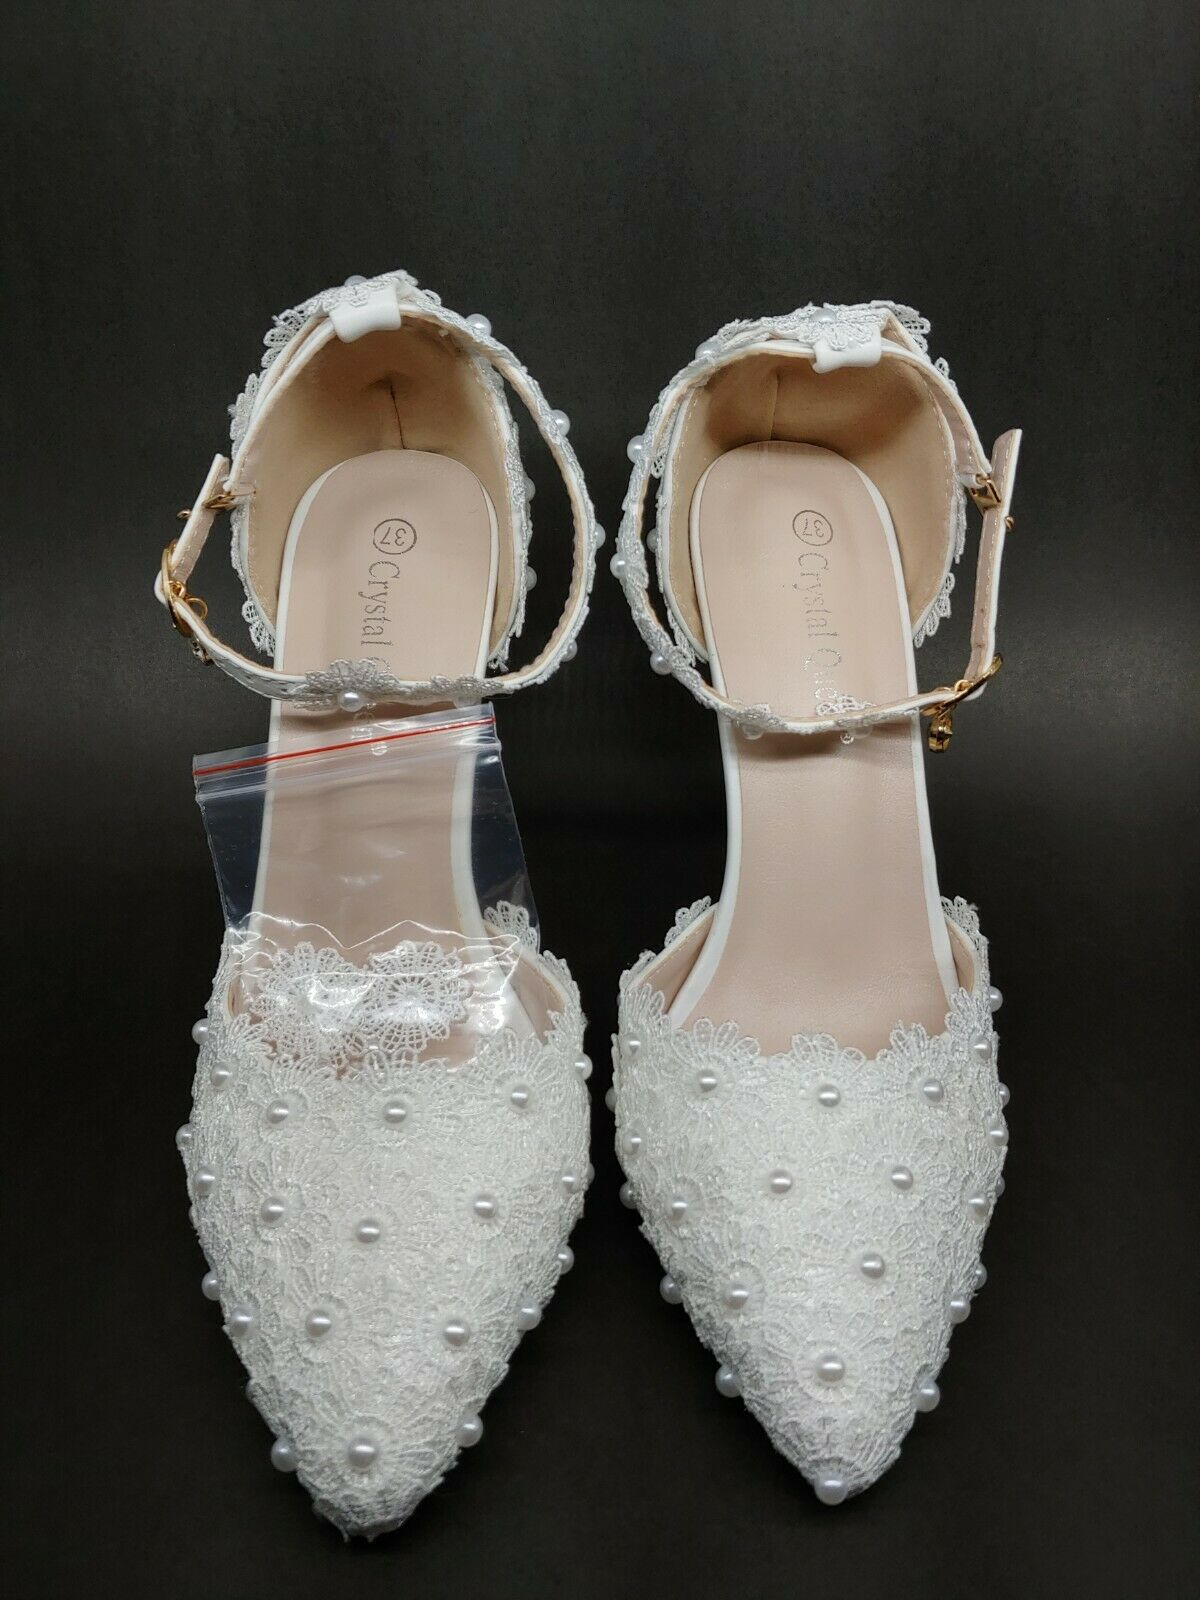 Crystal Queen Wedding Shoes Size 37 or 6.5 US